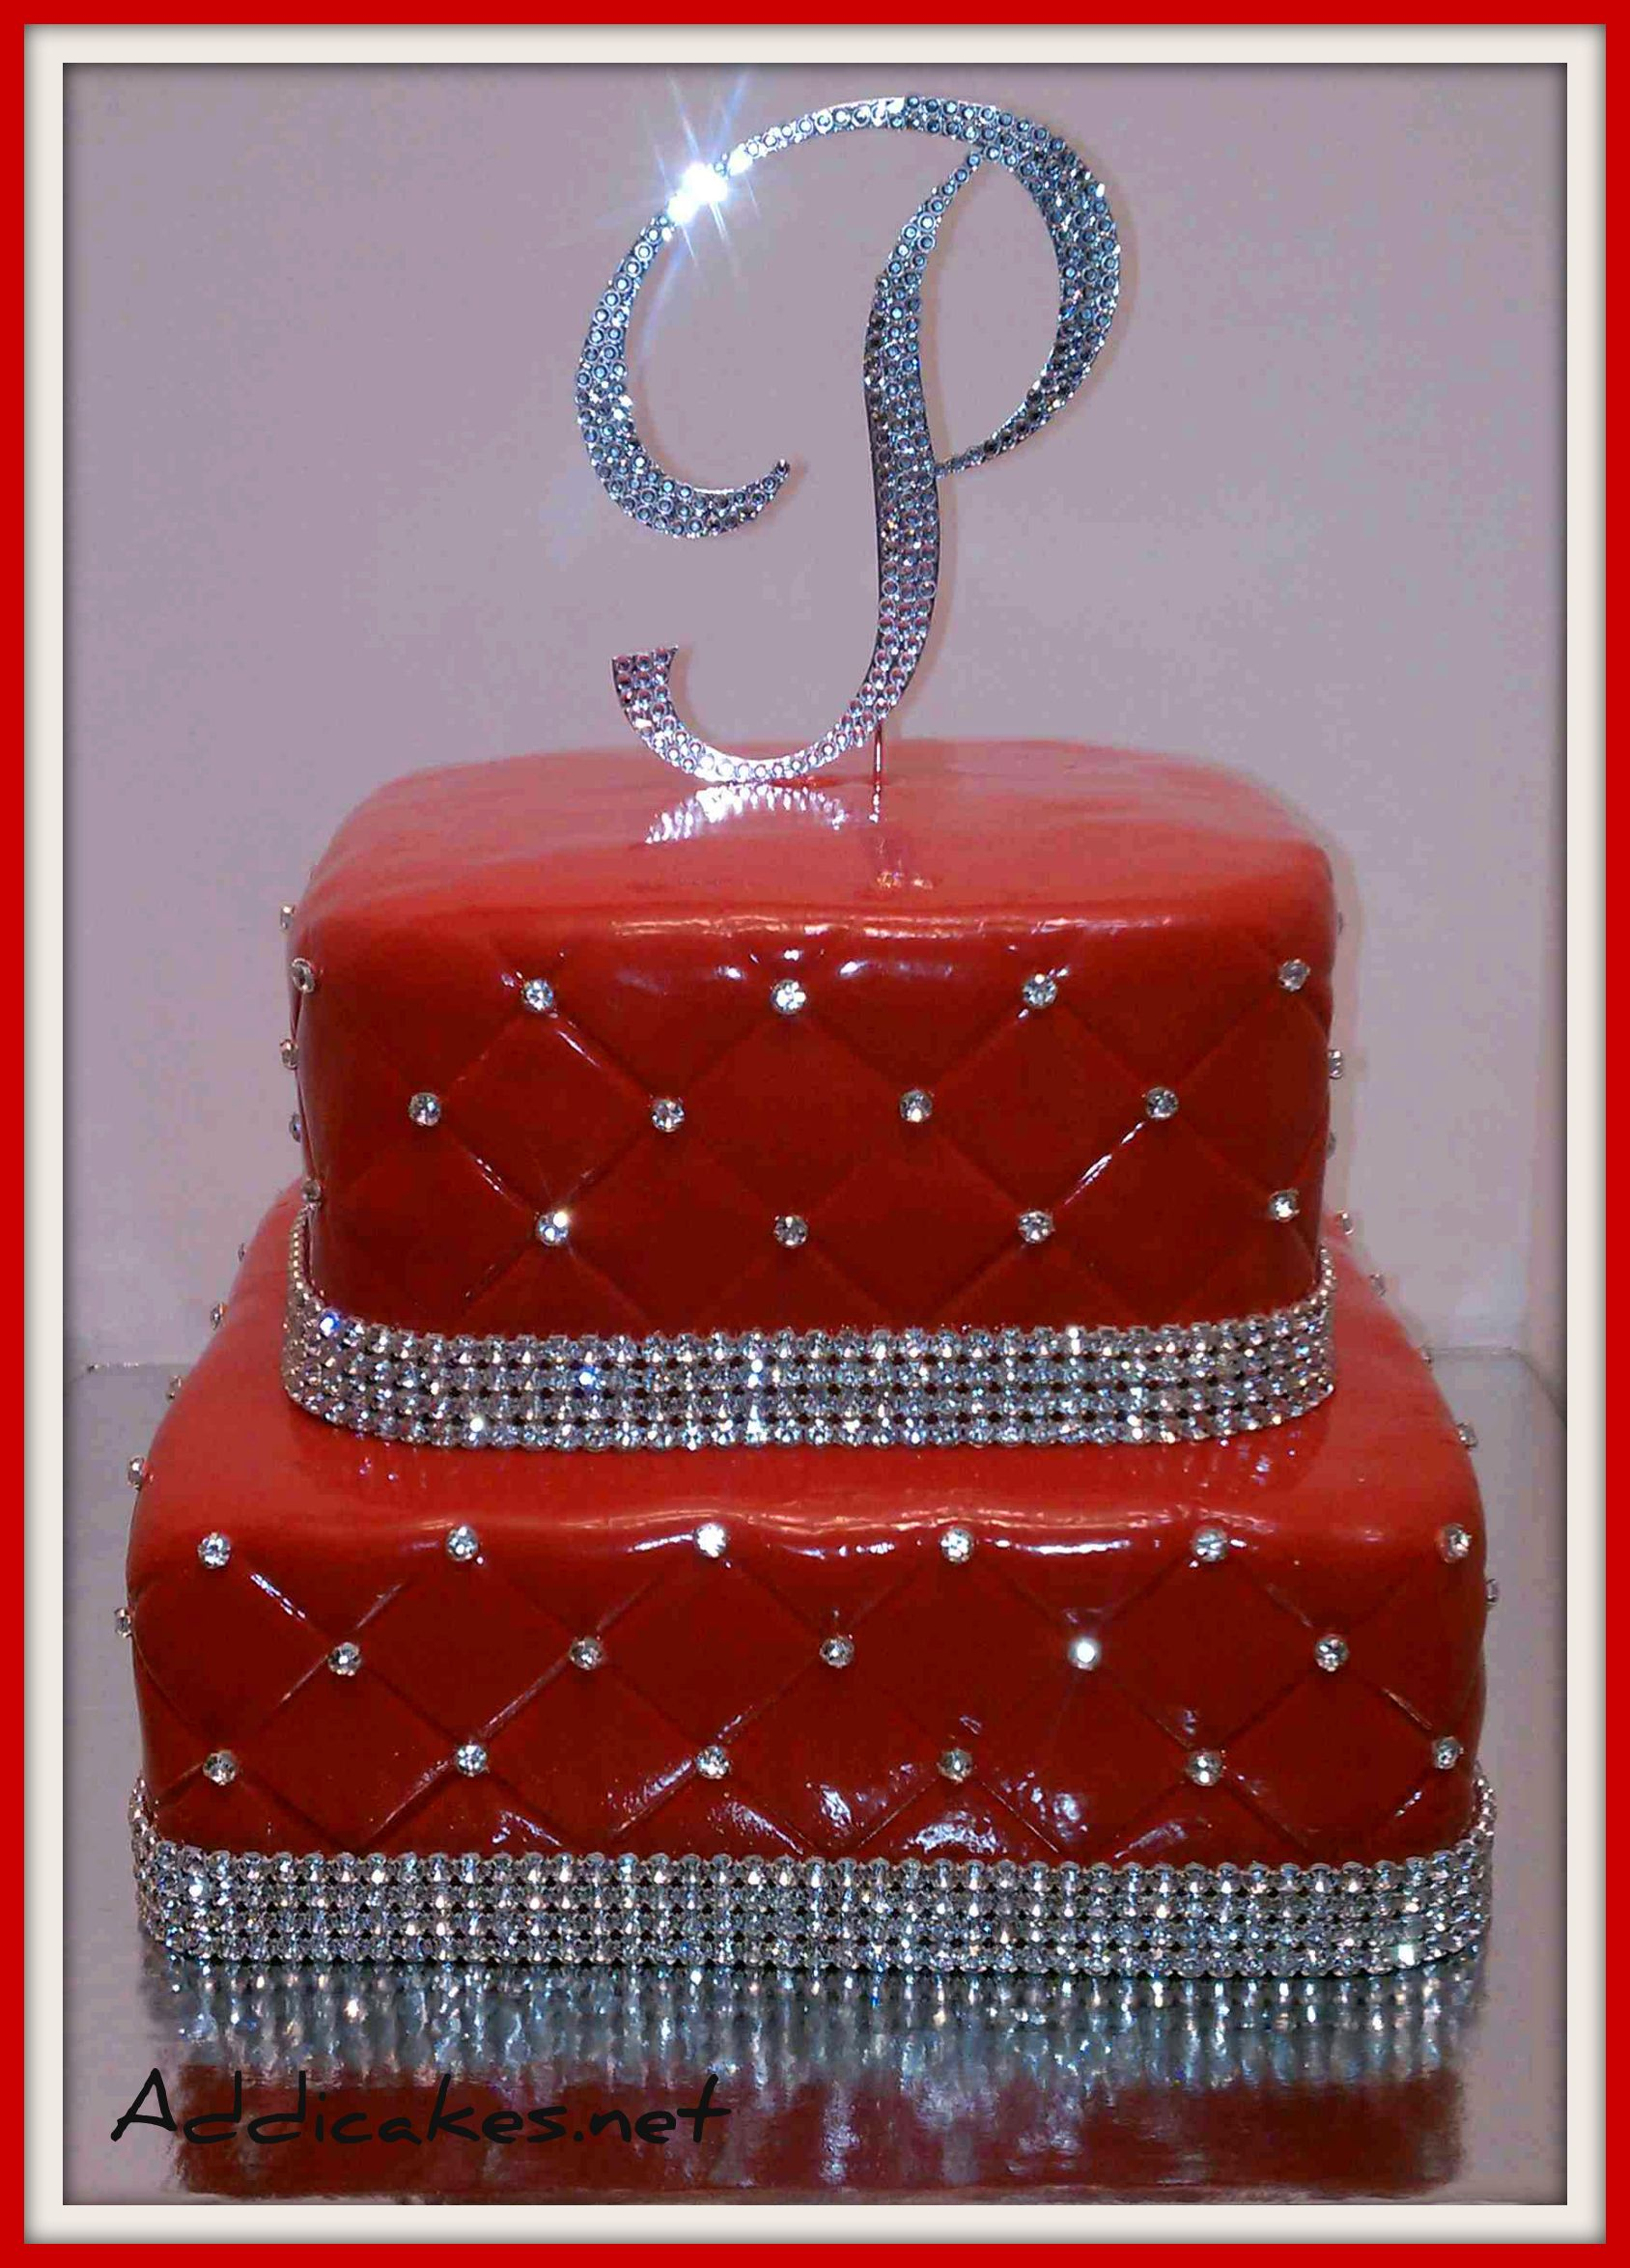 An Elegant Birthday Cake For A Young Lady